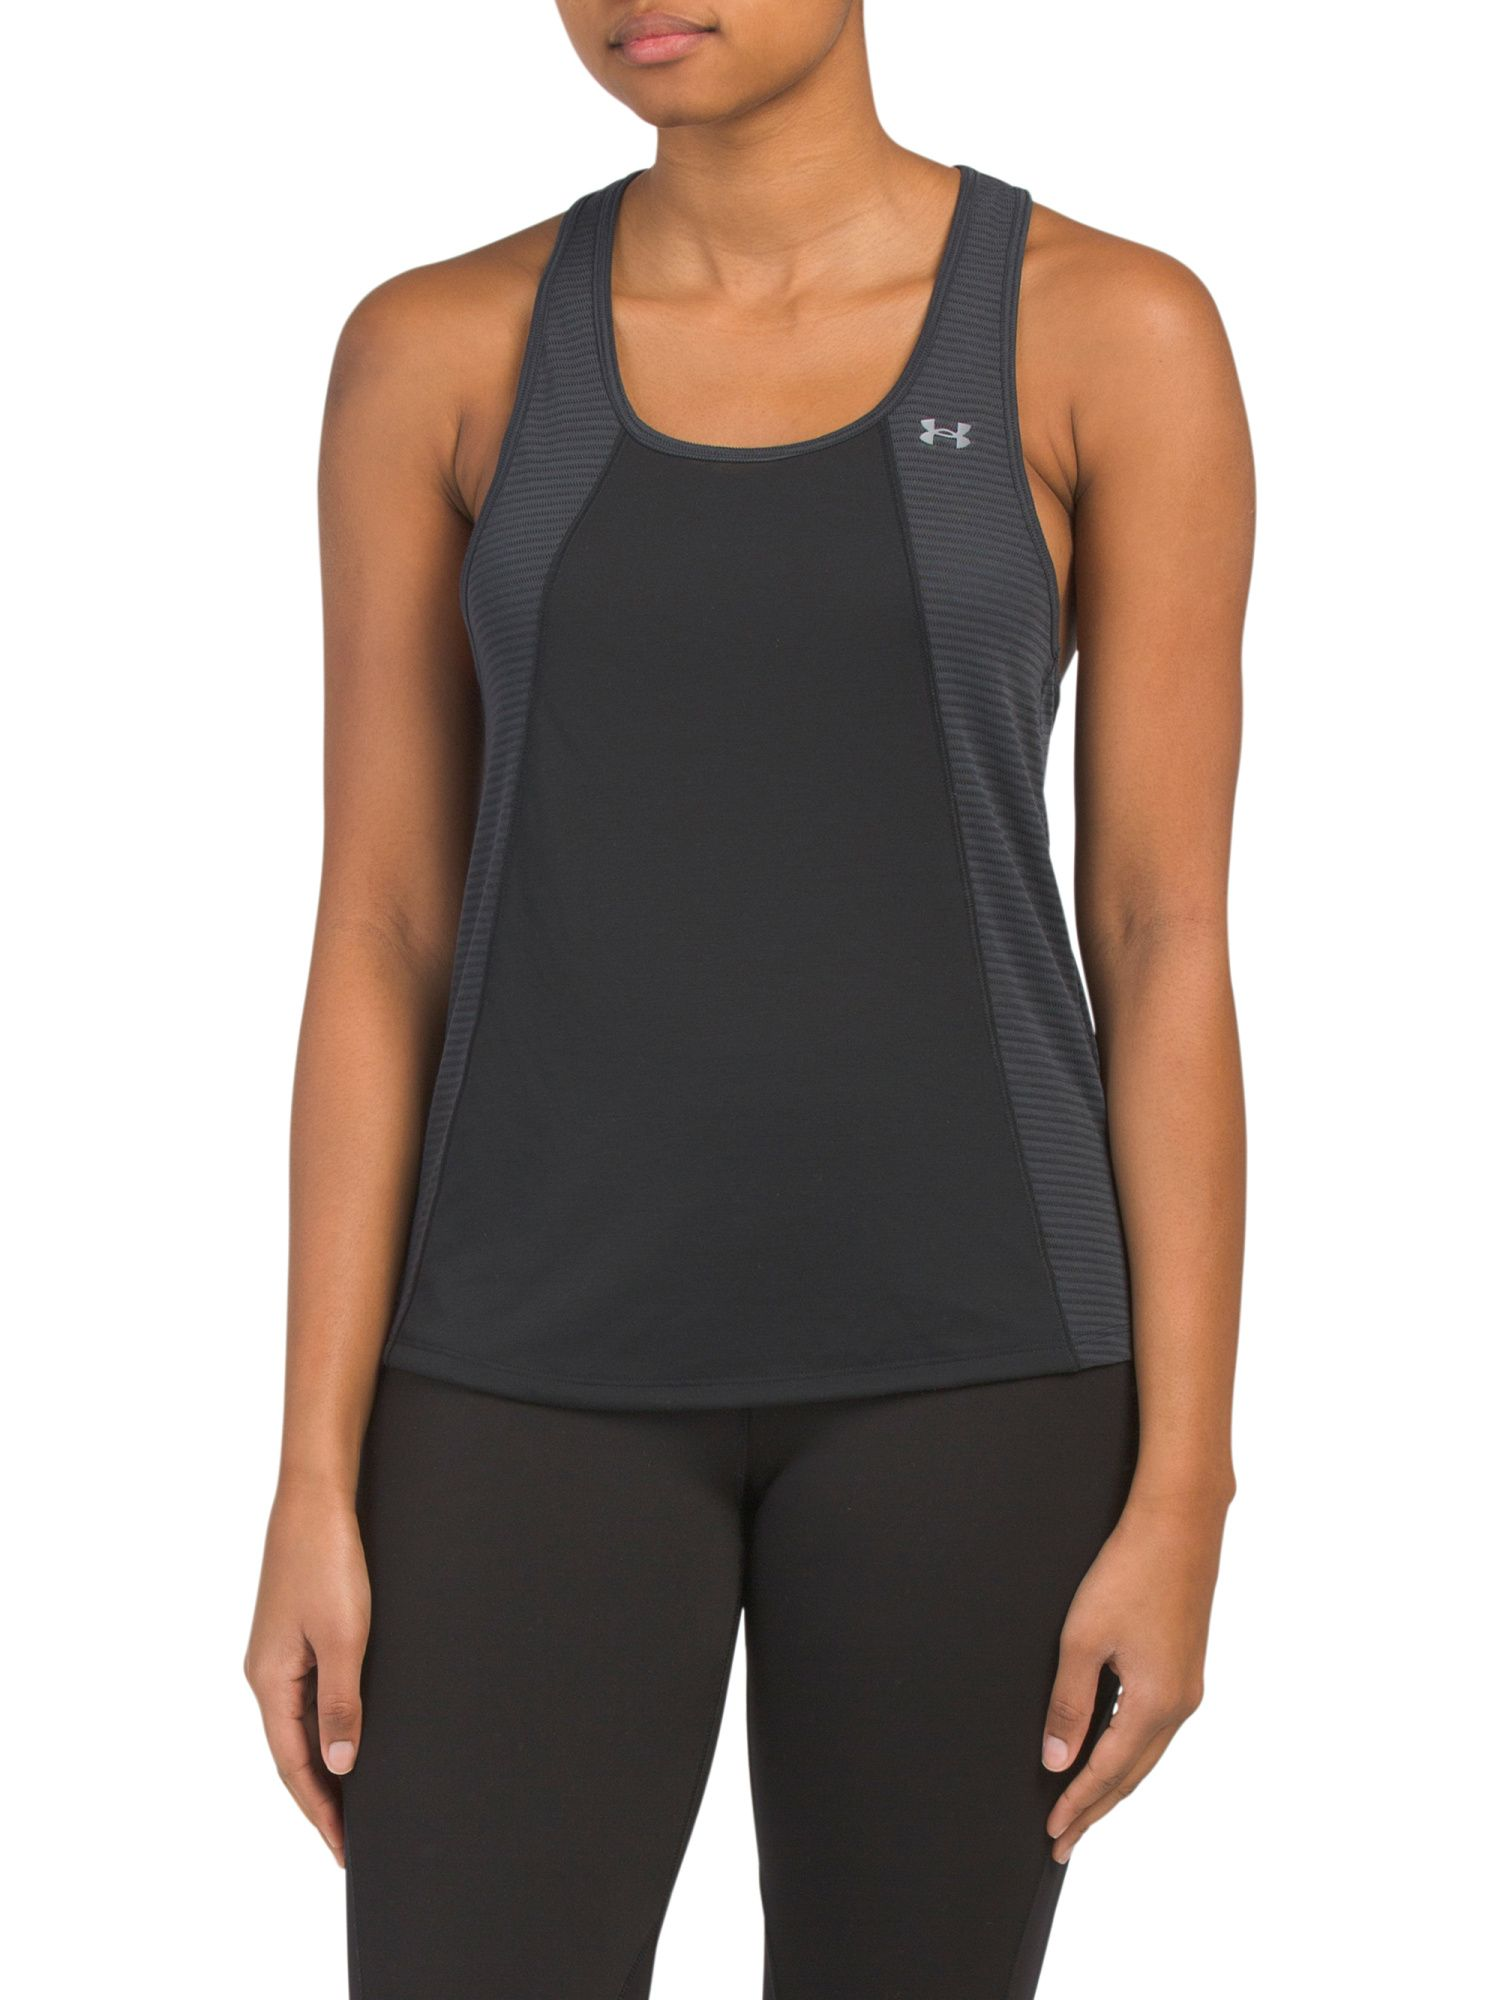 high resolution image Athletic tank tops, Fashion